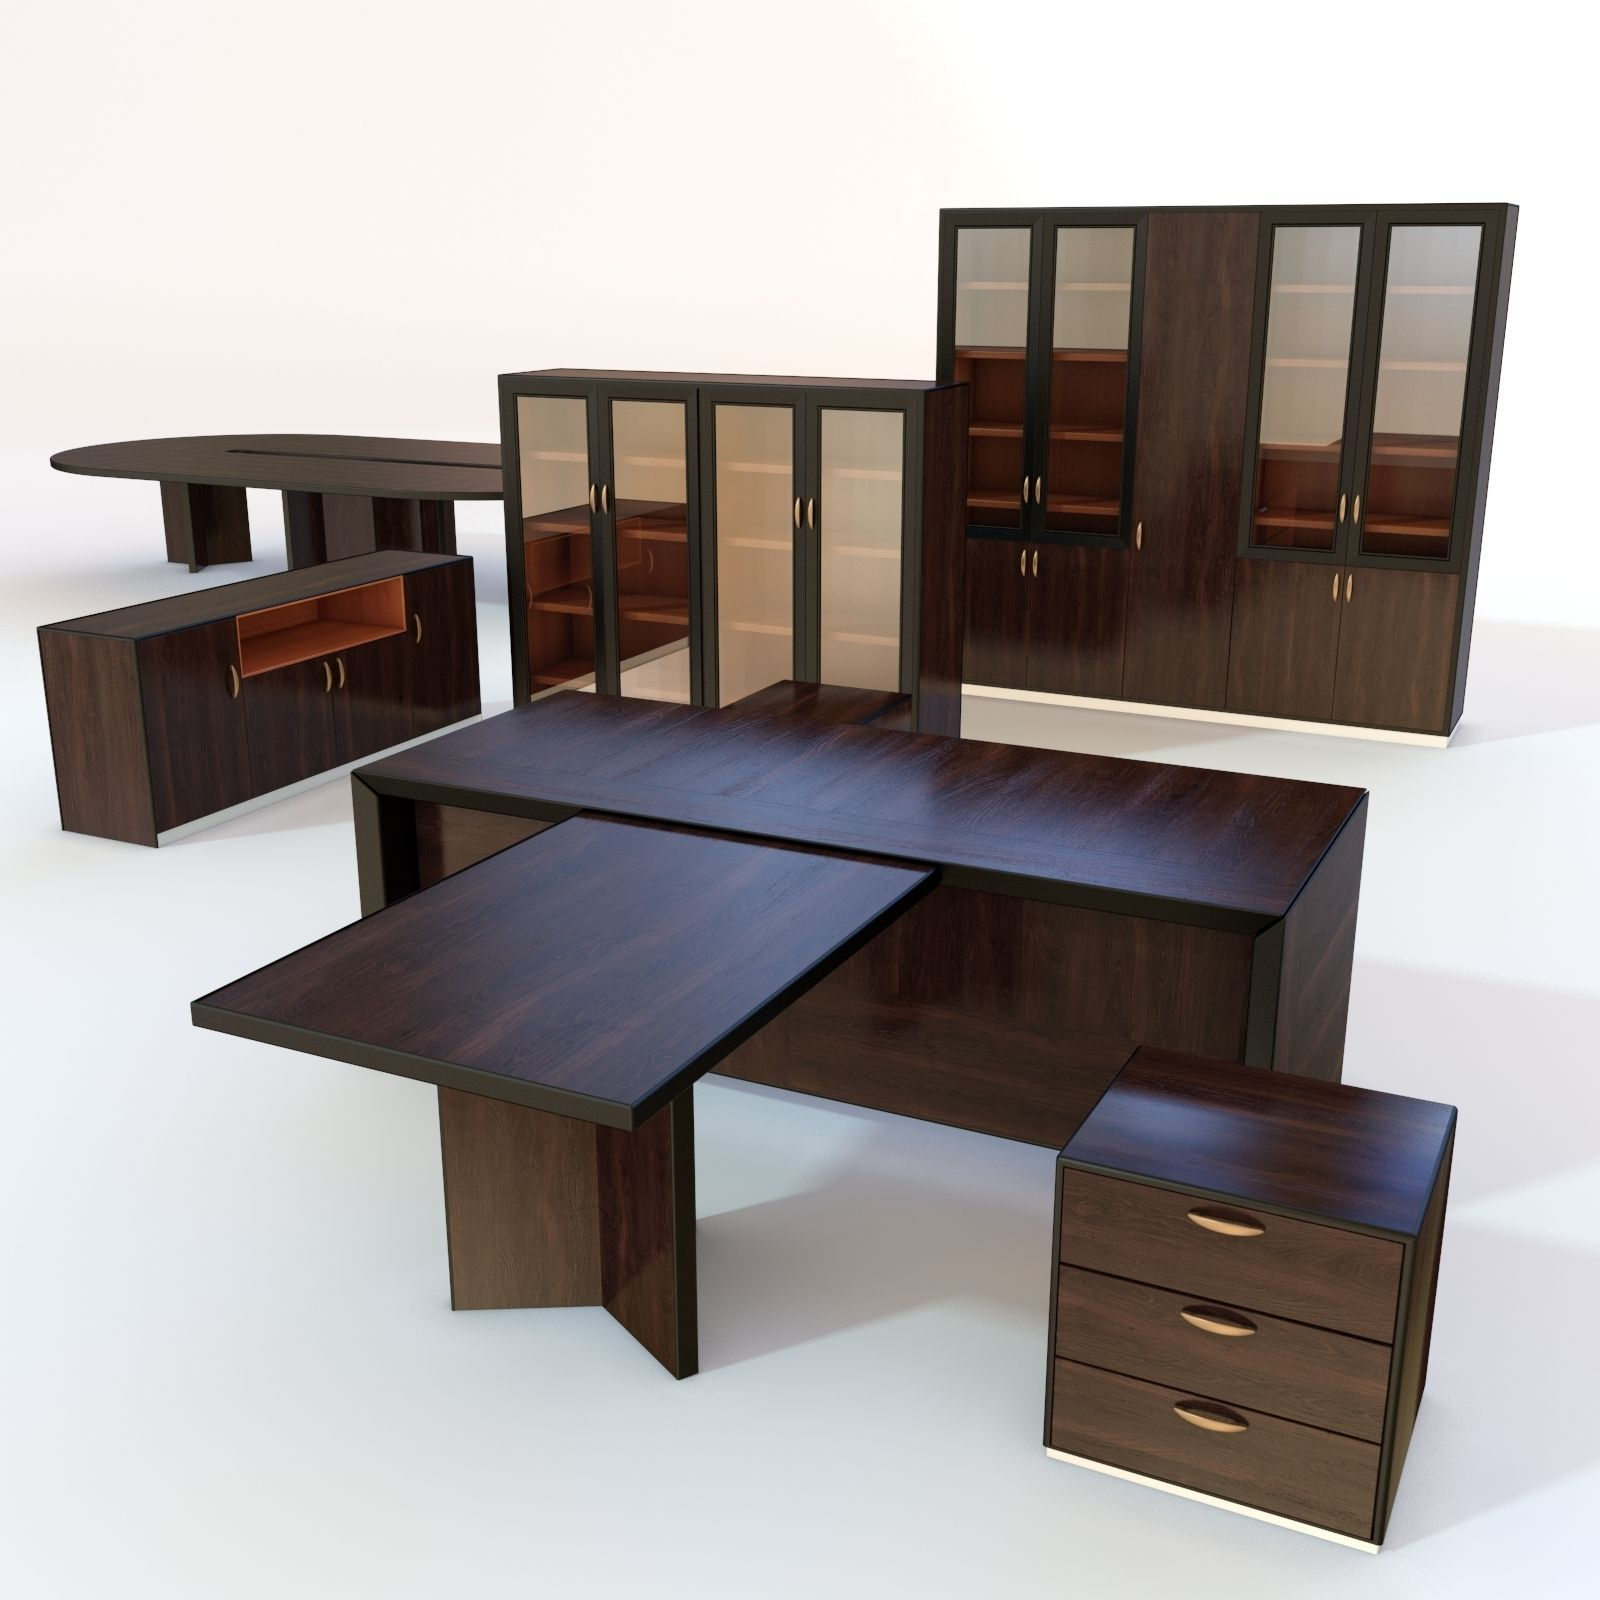 most max home ideas id attractive designing design furniture office inspiration with in executive